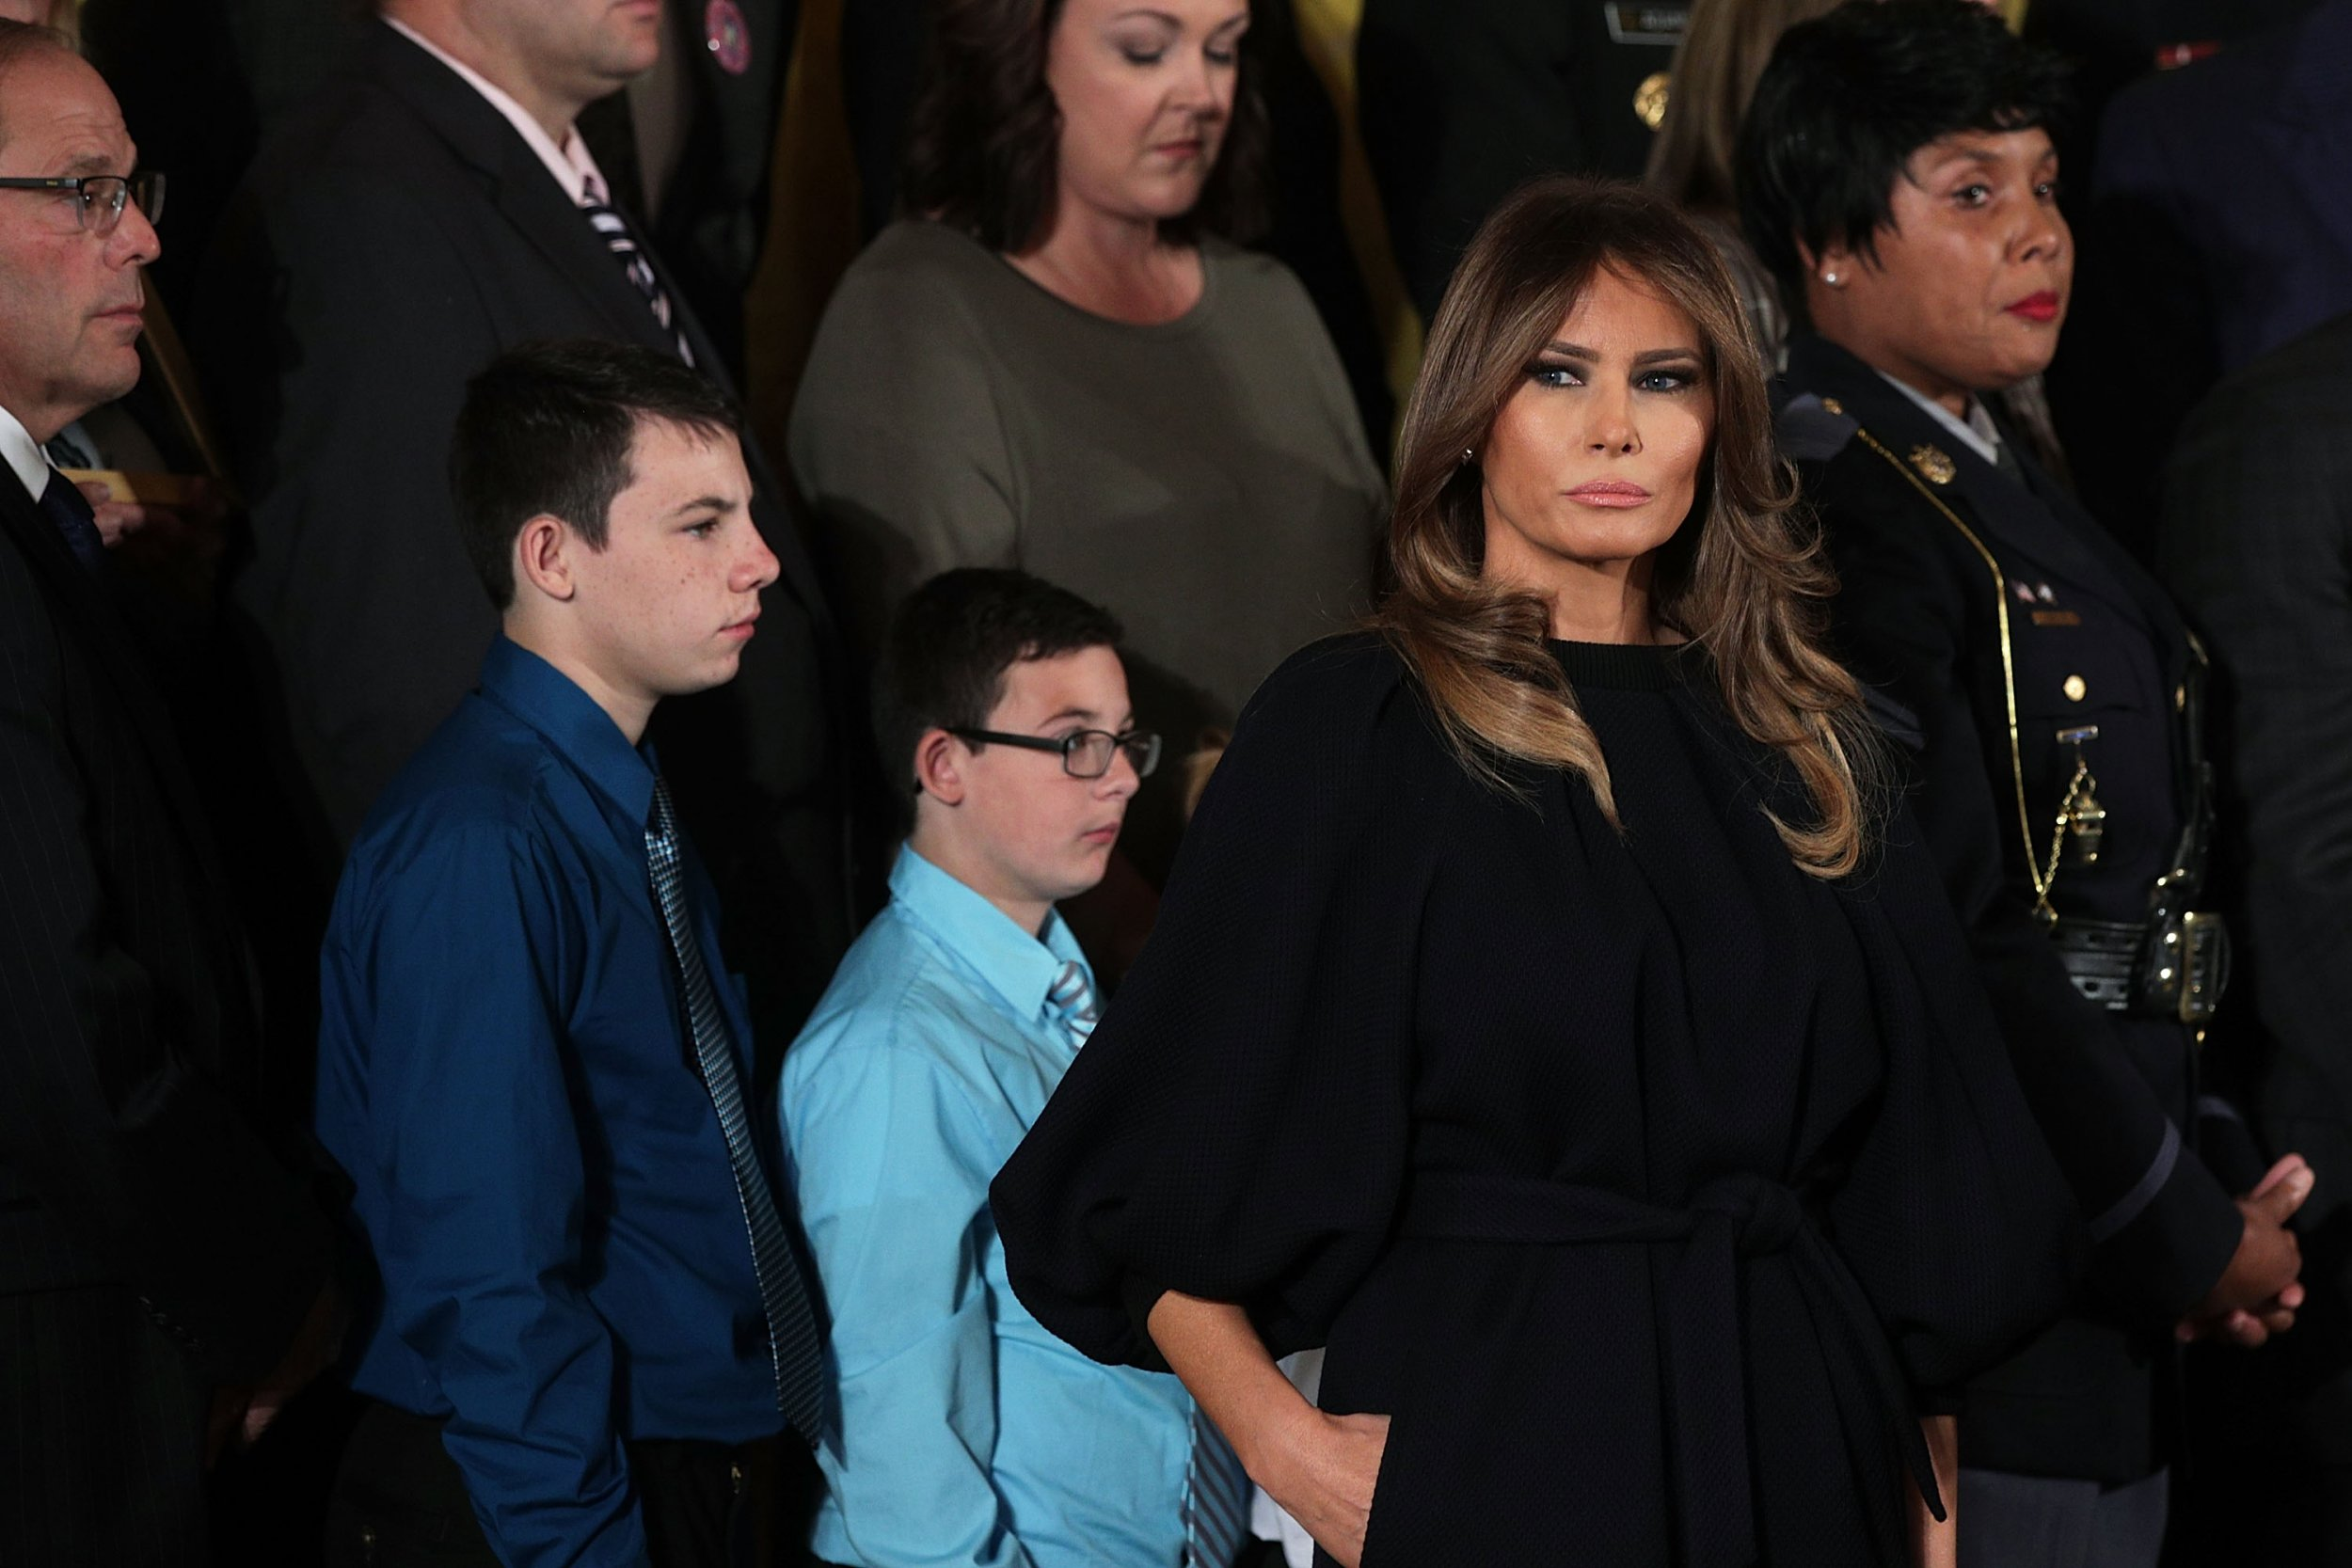 Is Melania Trump miserable?